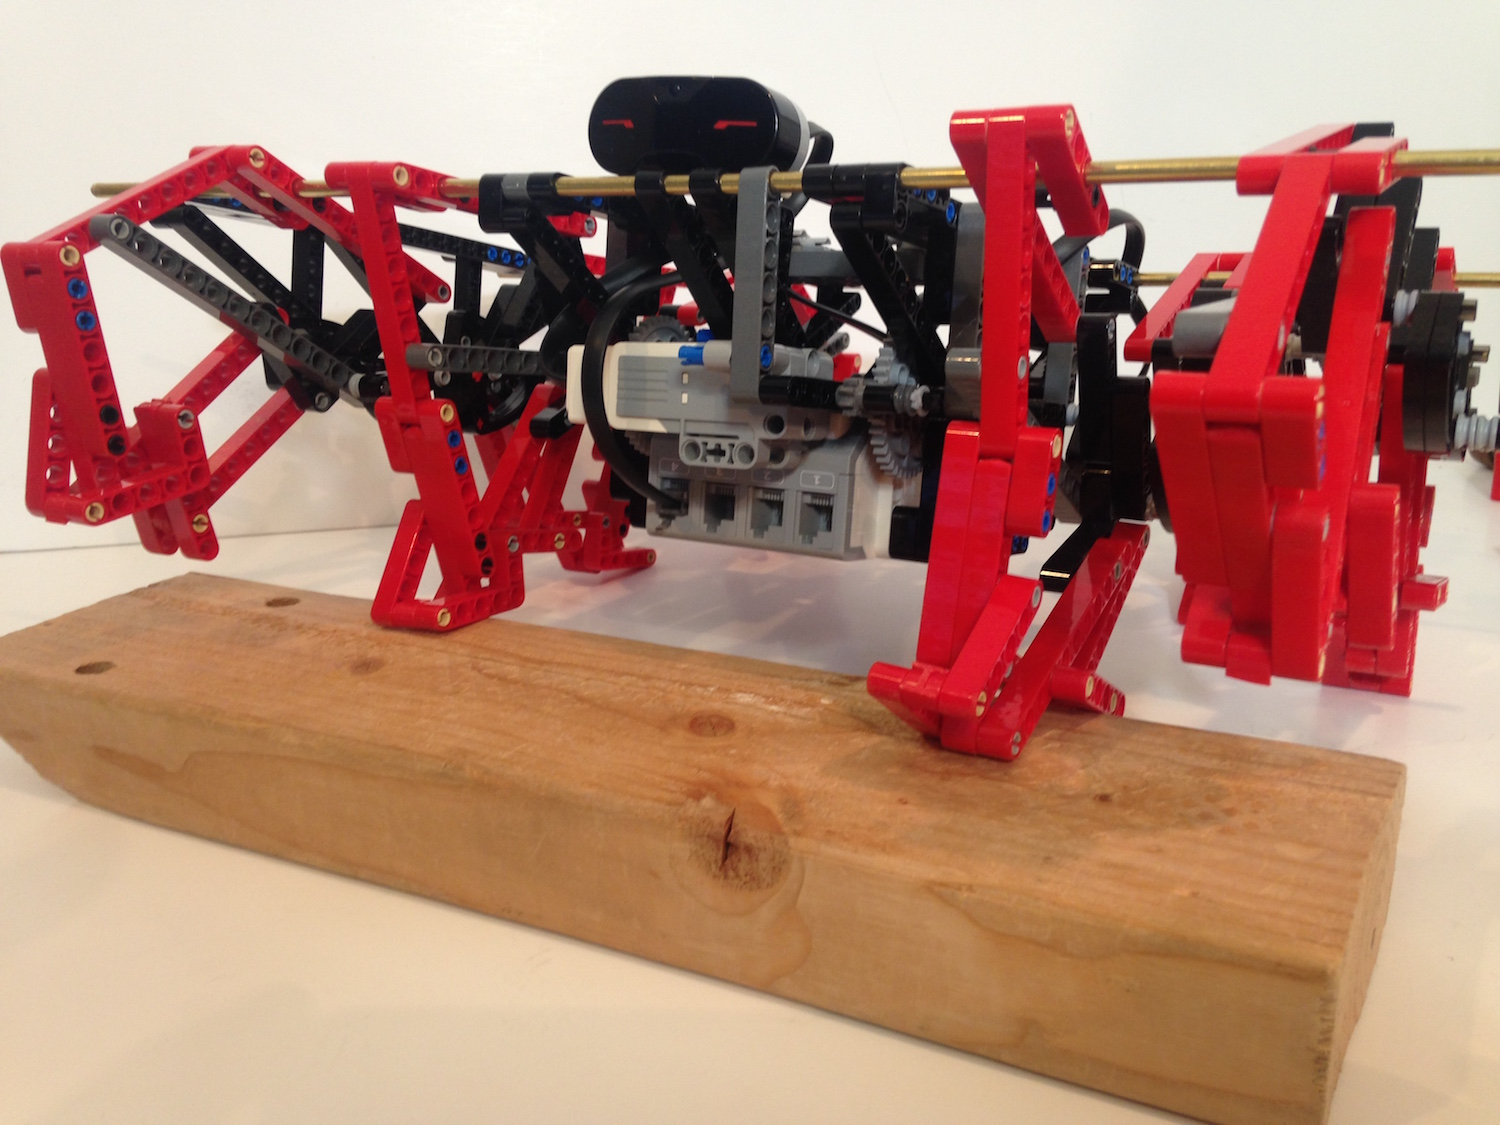 A Galloping Horse Inspired These Lego Mindstorms Trotbots